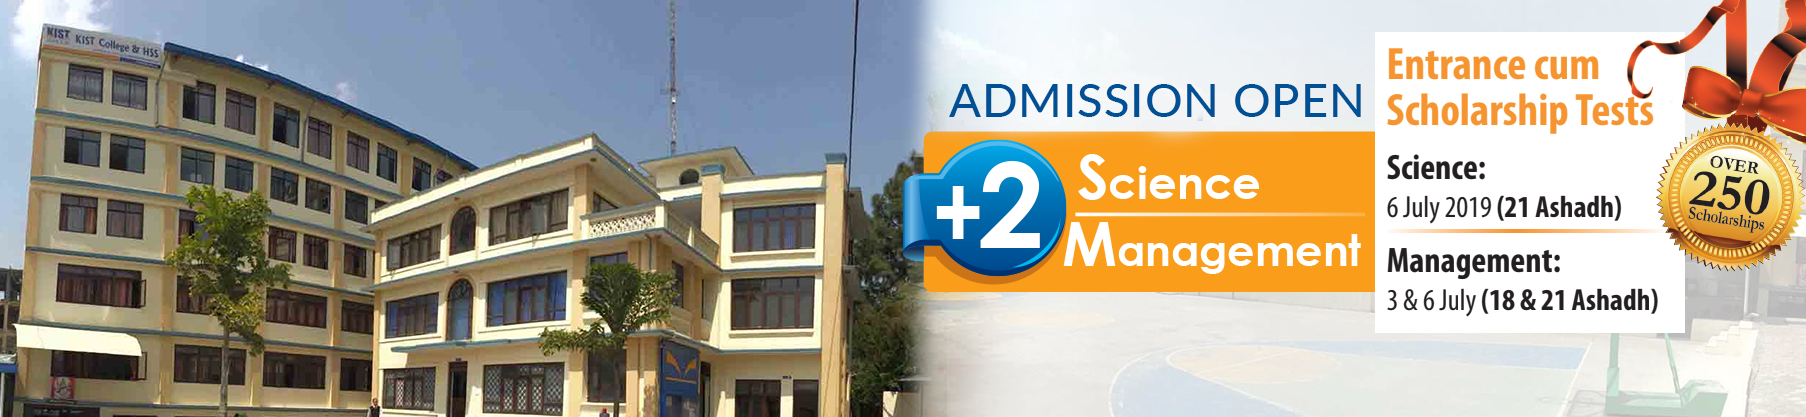 KIST SS/College announces admission for +2 Science and Management